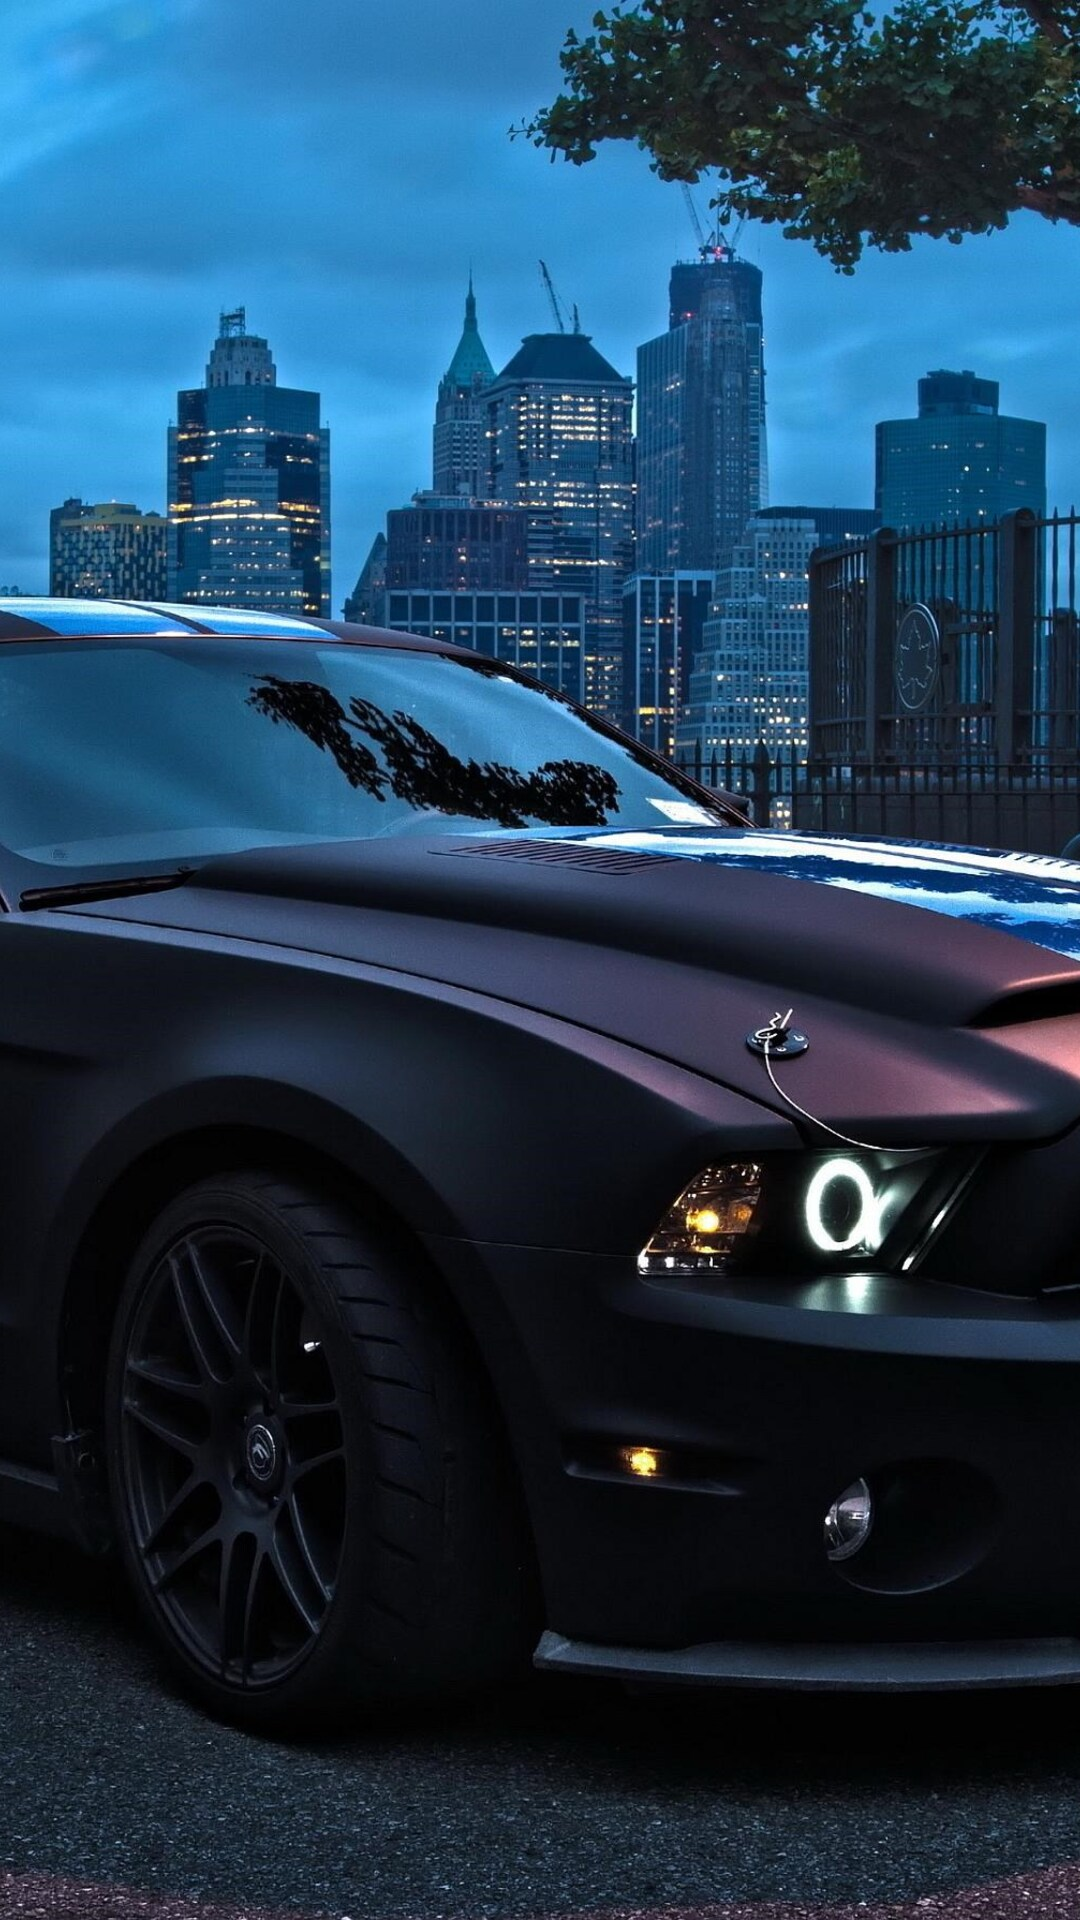 1080x1920 Ford Mustang Shelby Iphone 7,6s,6 Plus, Pixel xl ...